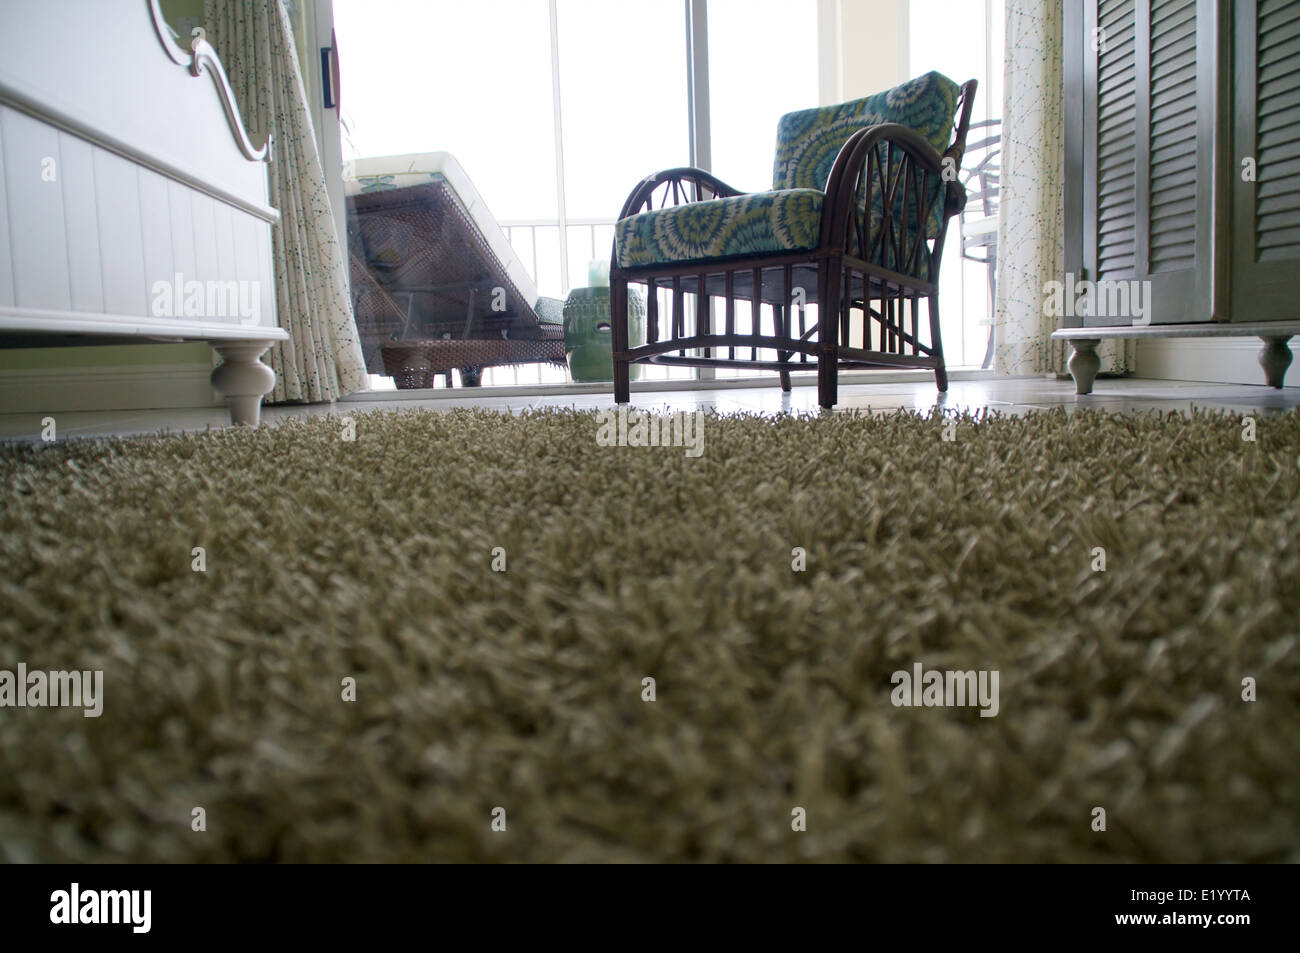 Image of: Low Angle View Of Room Looking Across A Shag Carpet On A Tile Floor Stock Photo Alamy